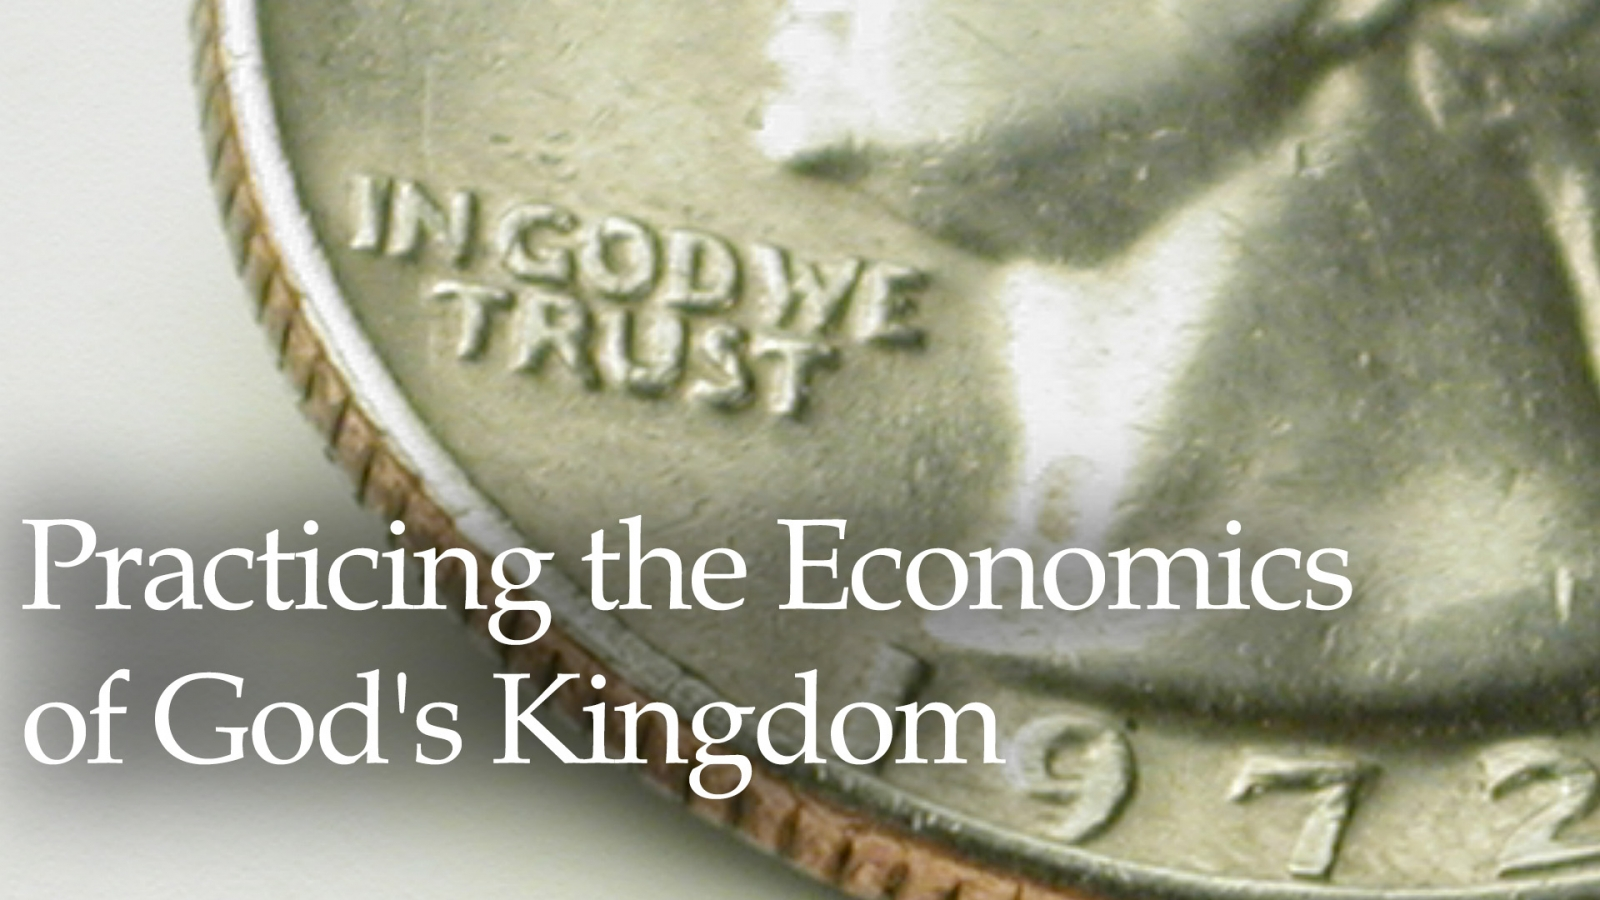 Practicing the Economics of God's Kingdom